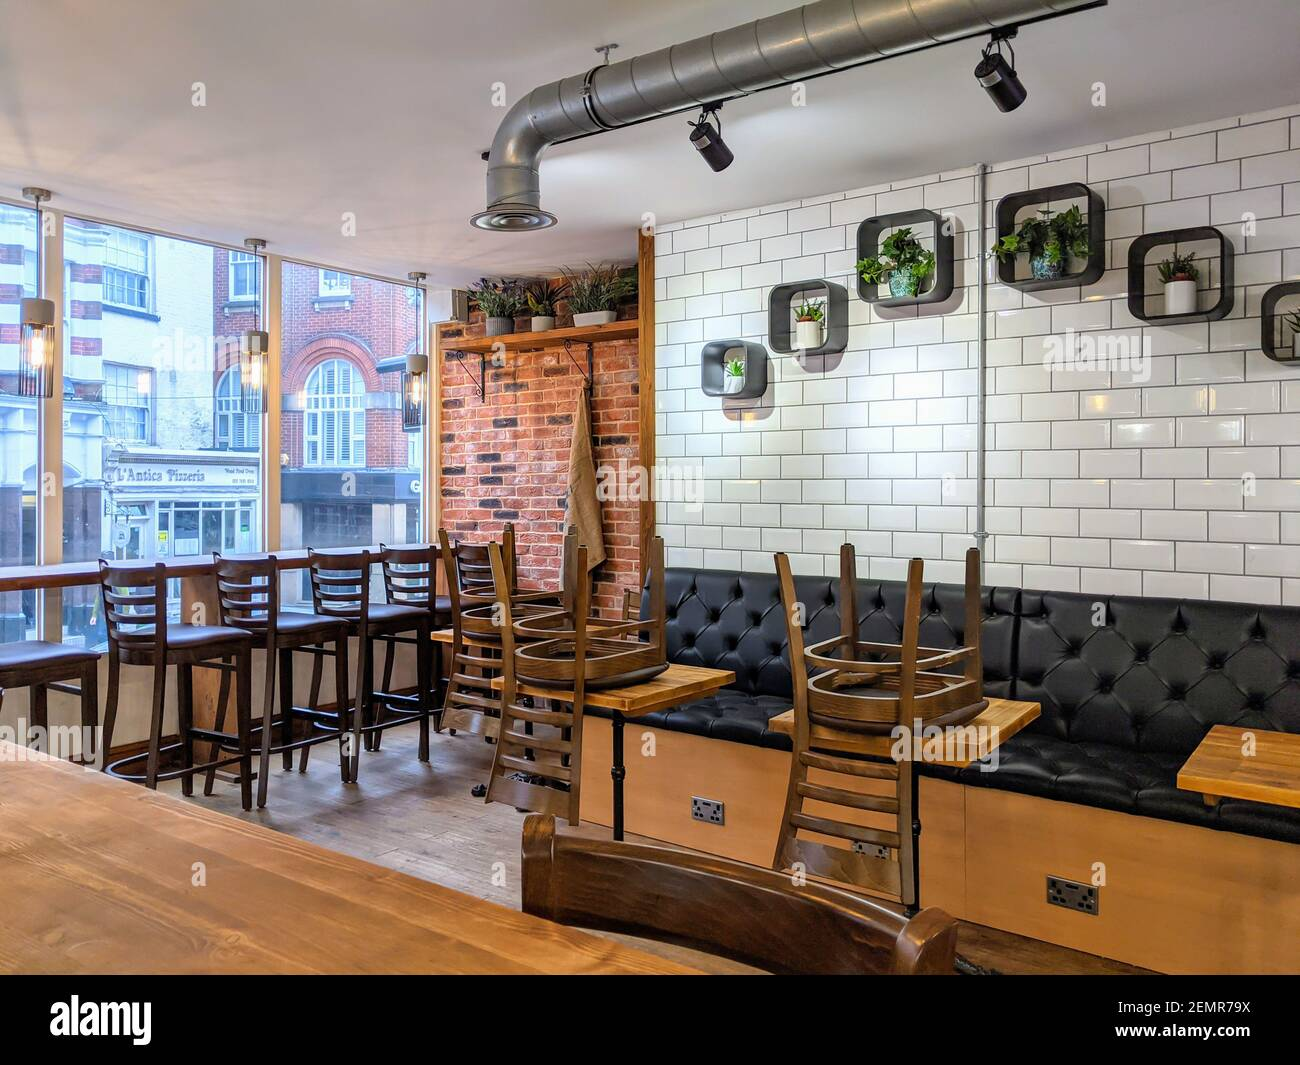 Exposed Brick Interior High Resolution Stock Photography And Images Alamy